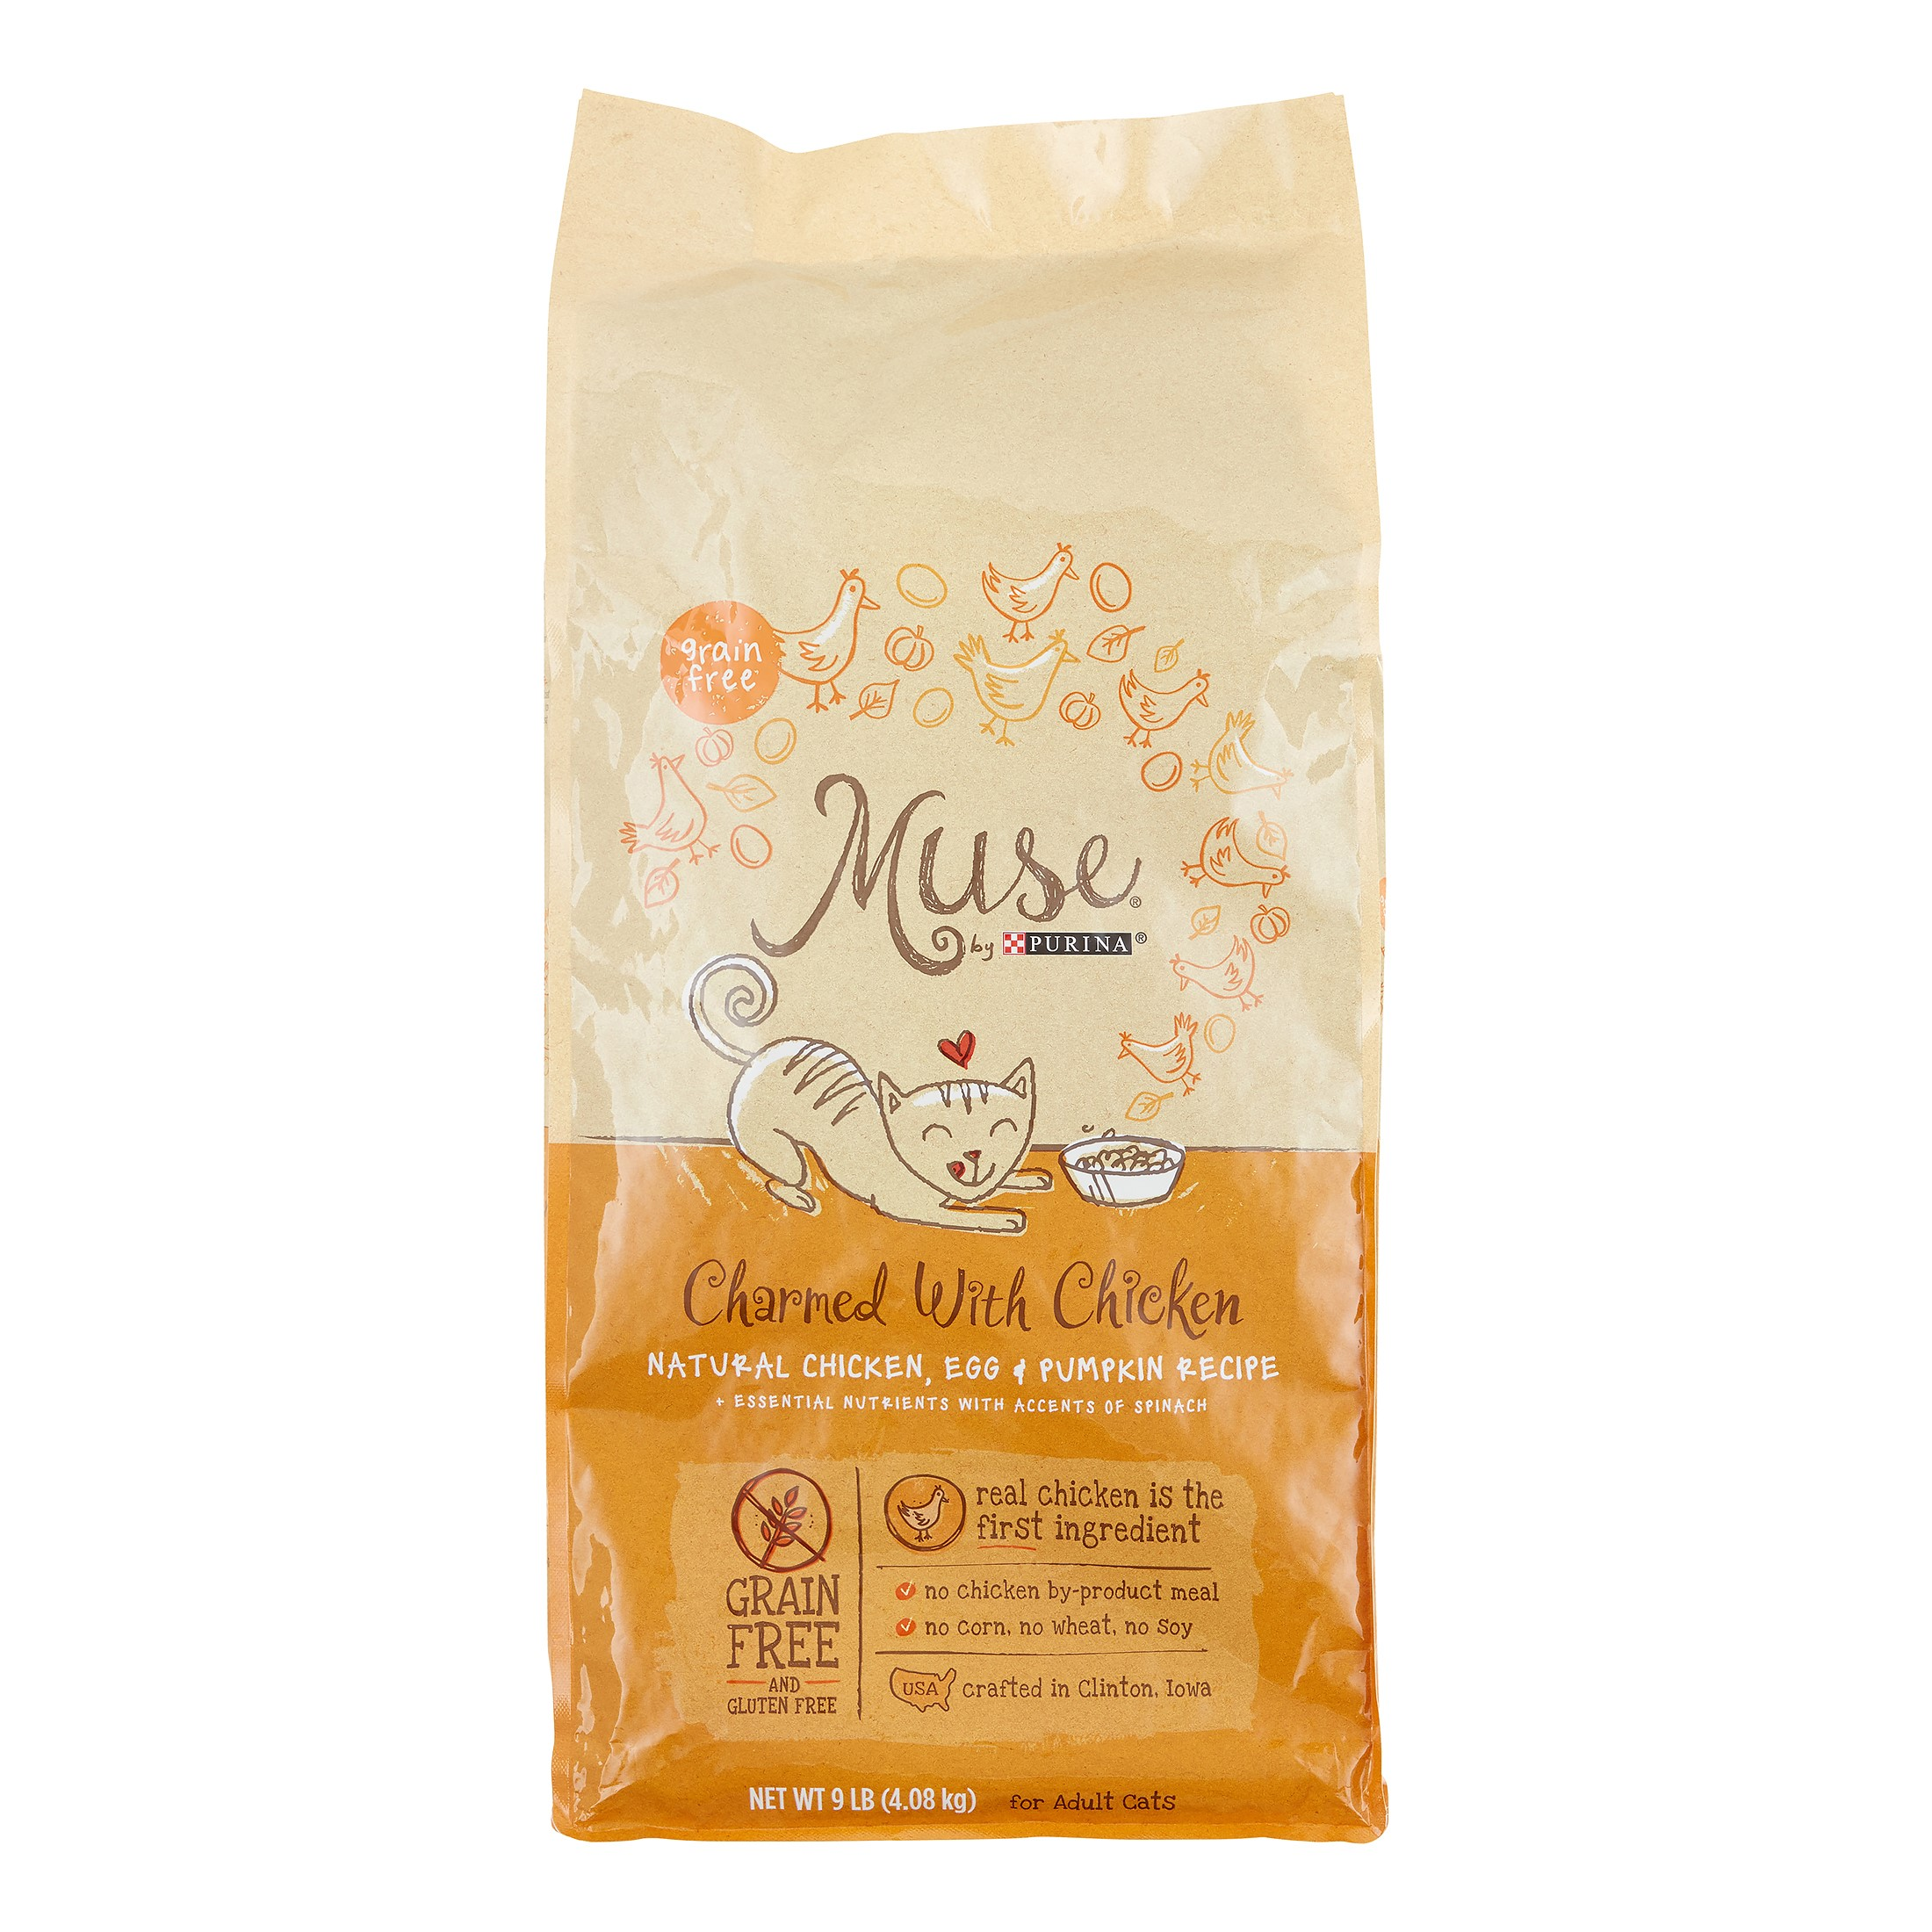 Purina Muse Charmed with Natural Chicken, Egg & Pumpkin Dry Cat Food, 9 lb